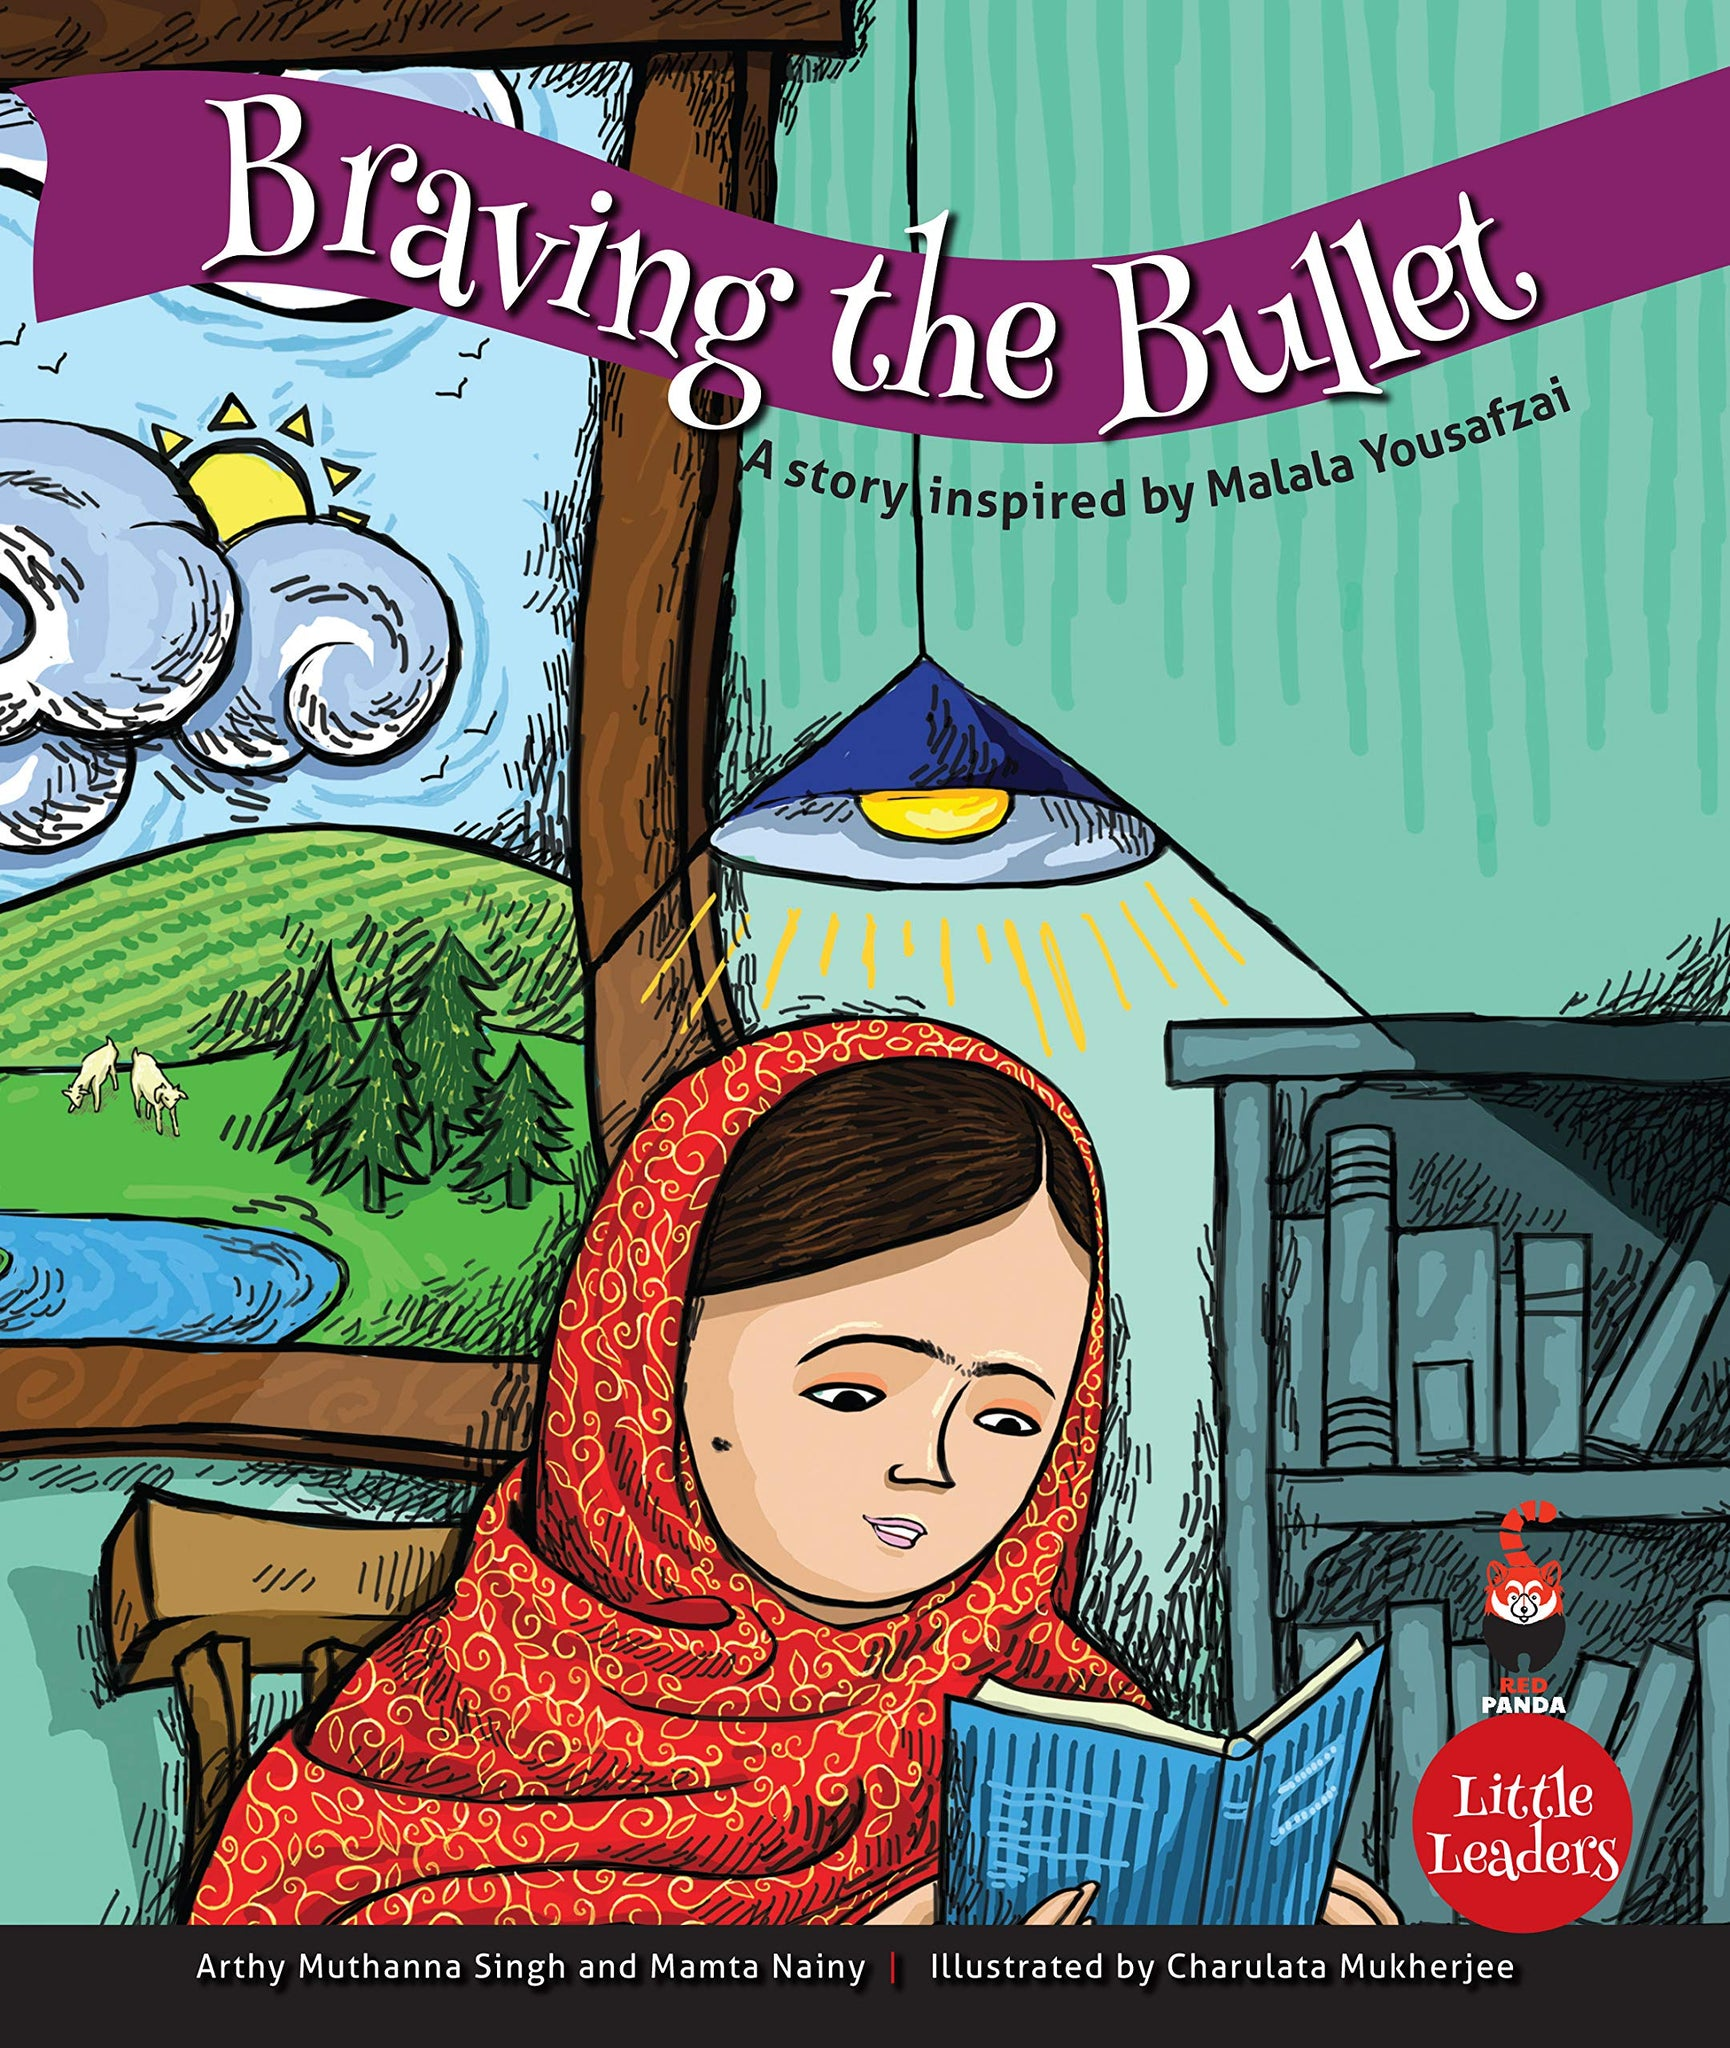 Little Leaders - Braving the Bullet: A Story Inspired by Malala Yousufzei